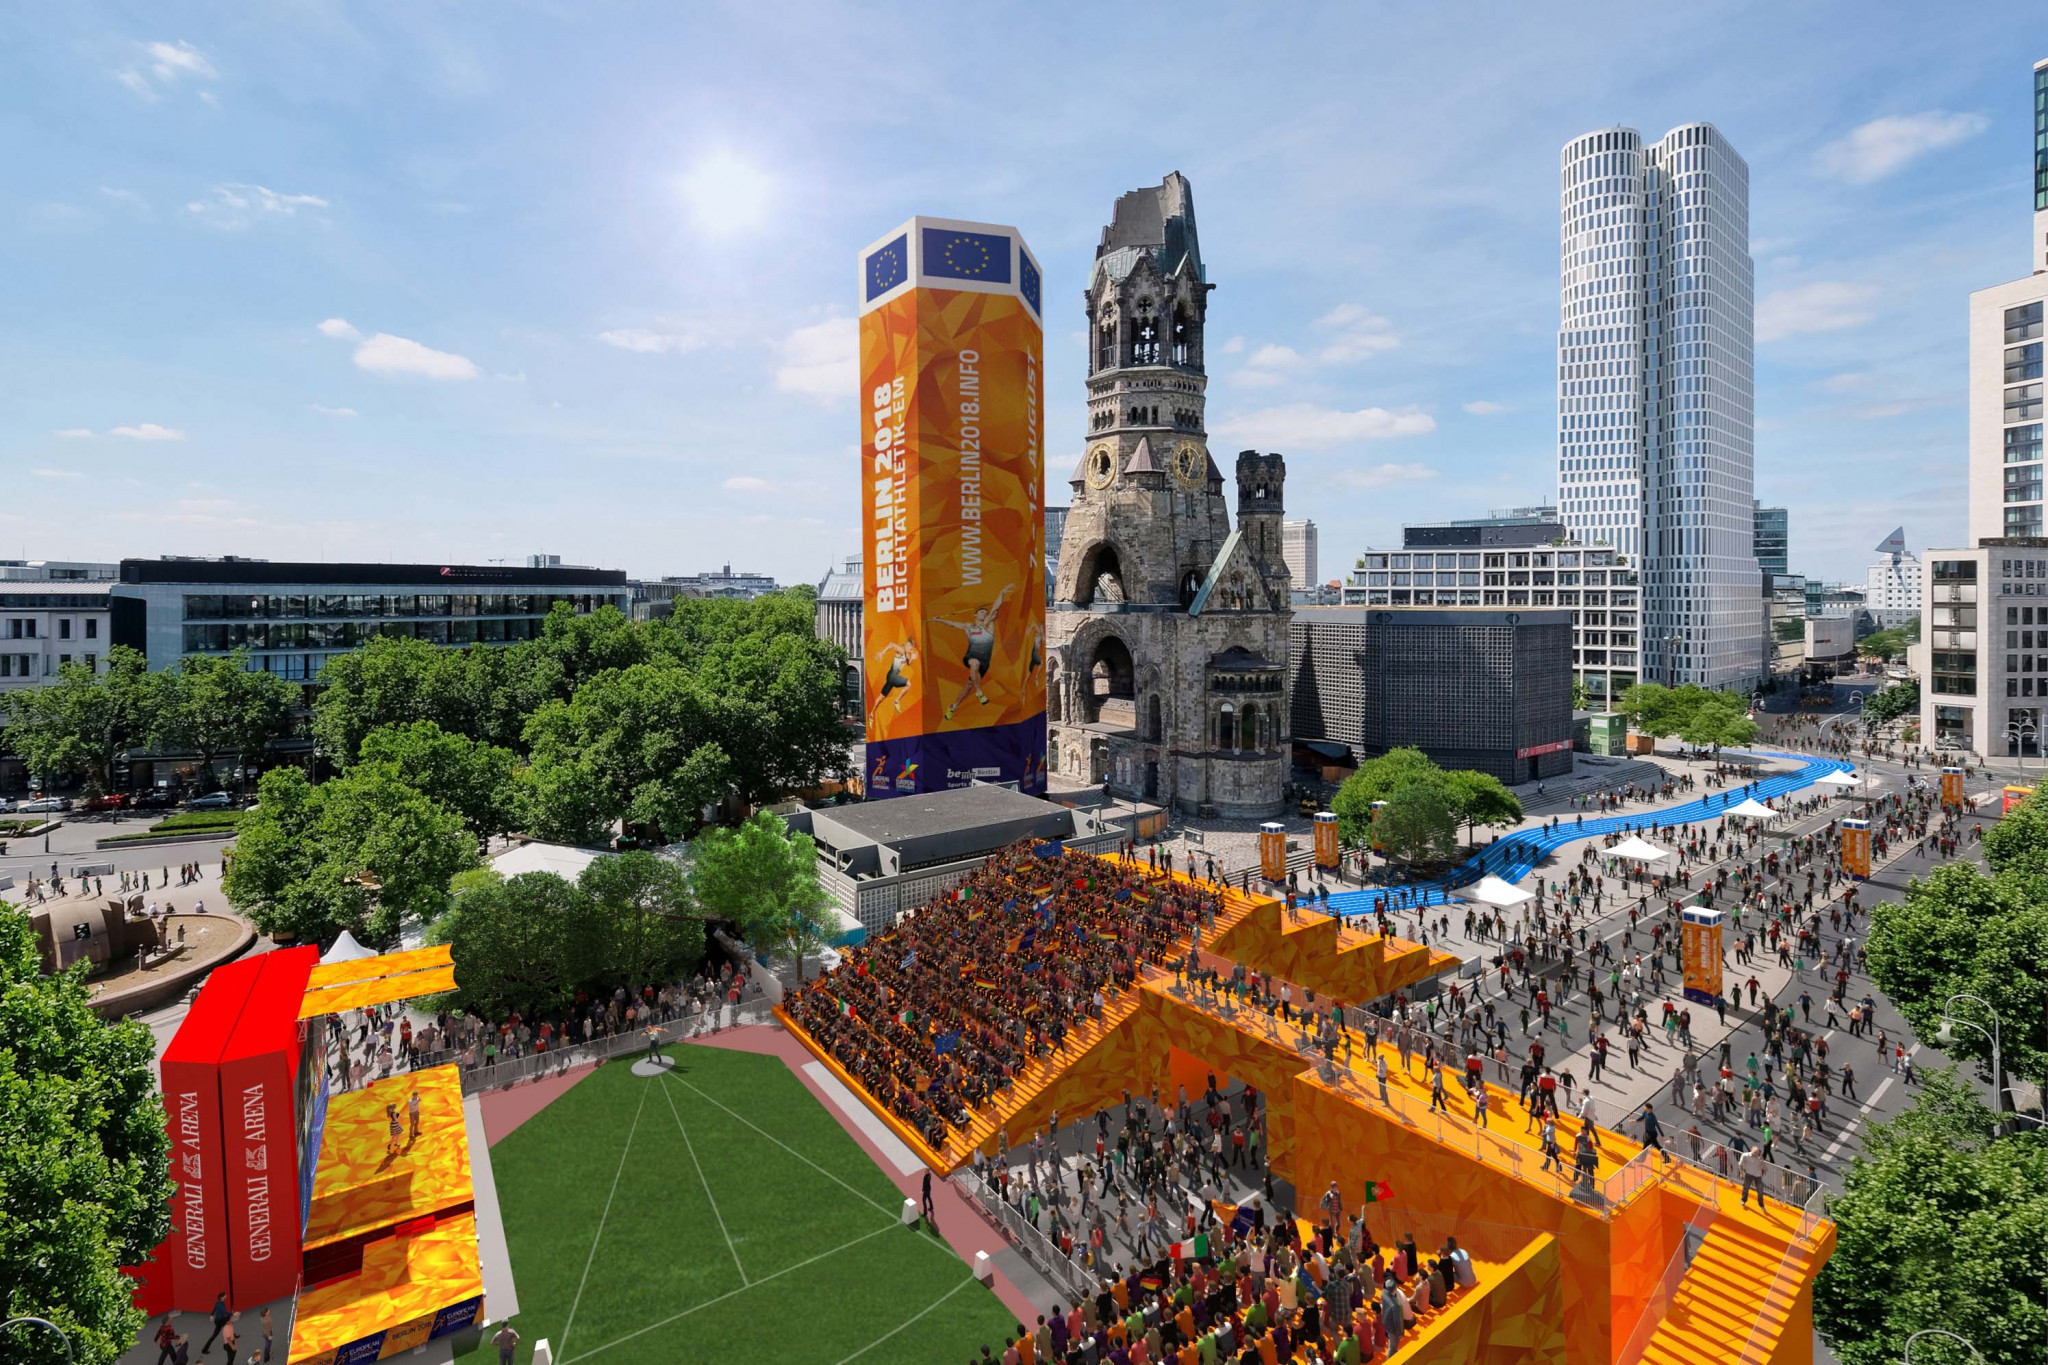 The European Mile at the Breitscheidplatz will host shot put qualifying and the end of the marathon and race walks and all the victory ceremonies during the European Athletics Championships in Berlin ©Berlin 2018